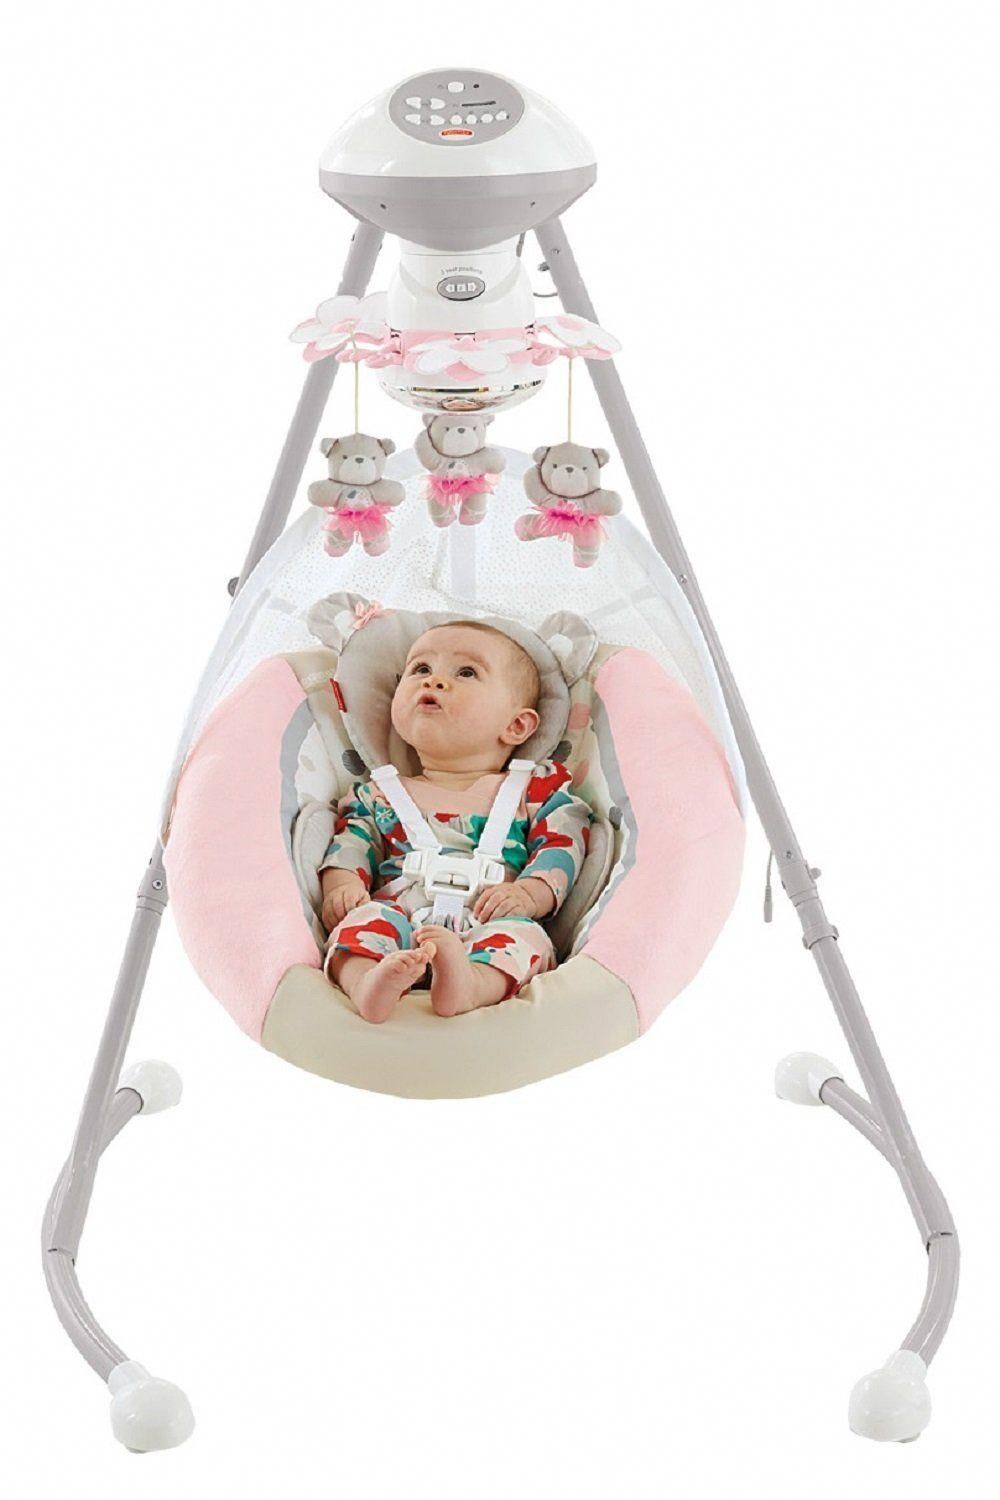 The Best Baby Swings Of 2021 Baby Swings Baby Swings And Bouncers Baby Cradle